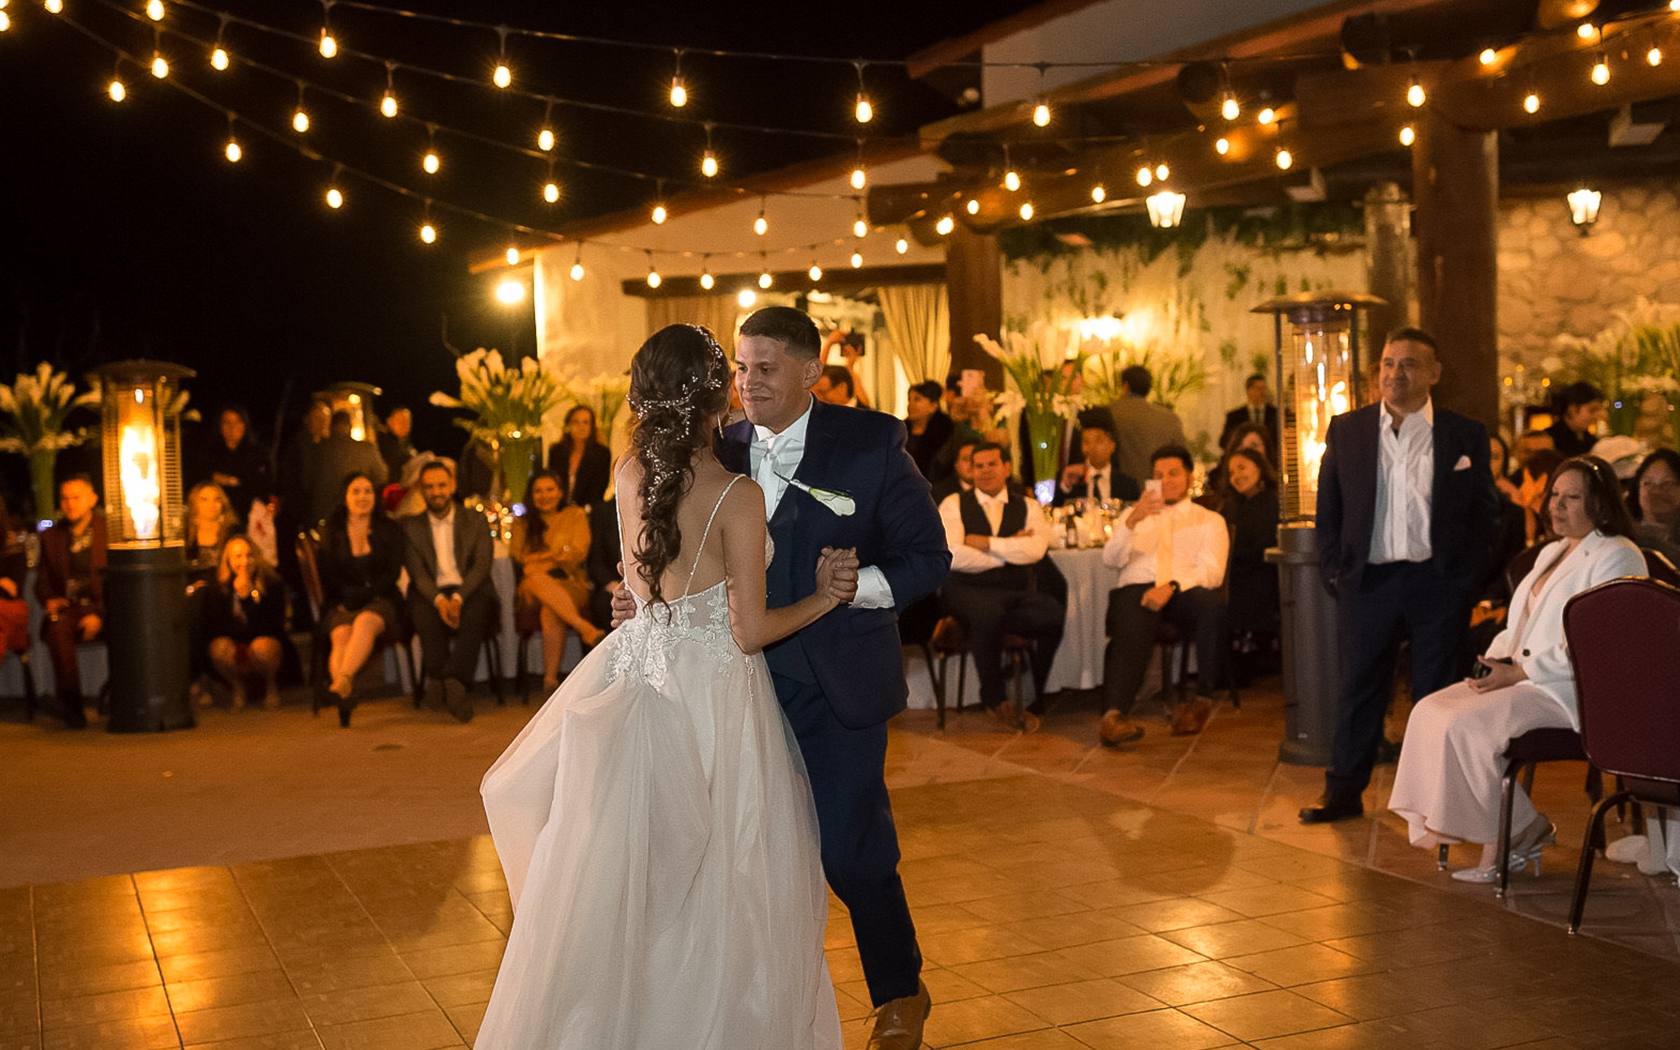 bride and groom dancing on dance floor outside with string lights